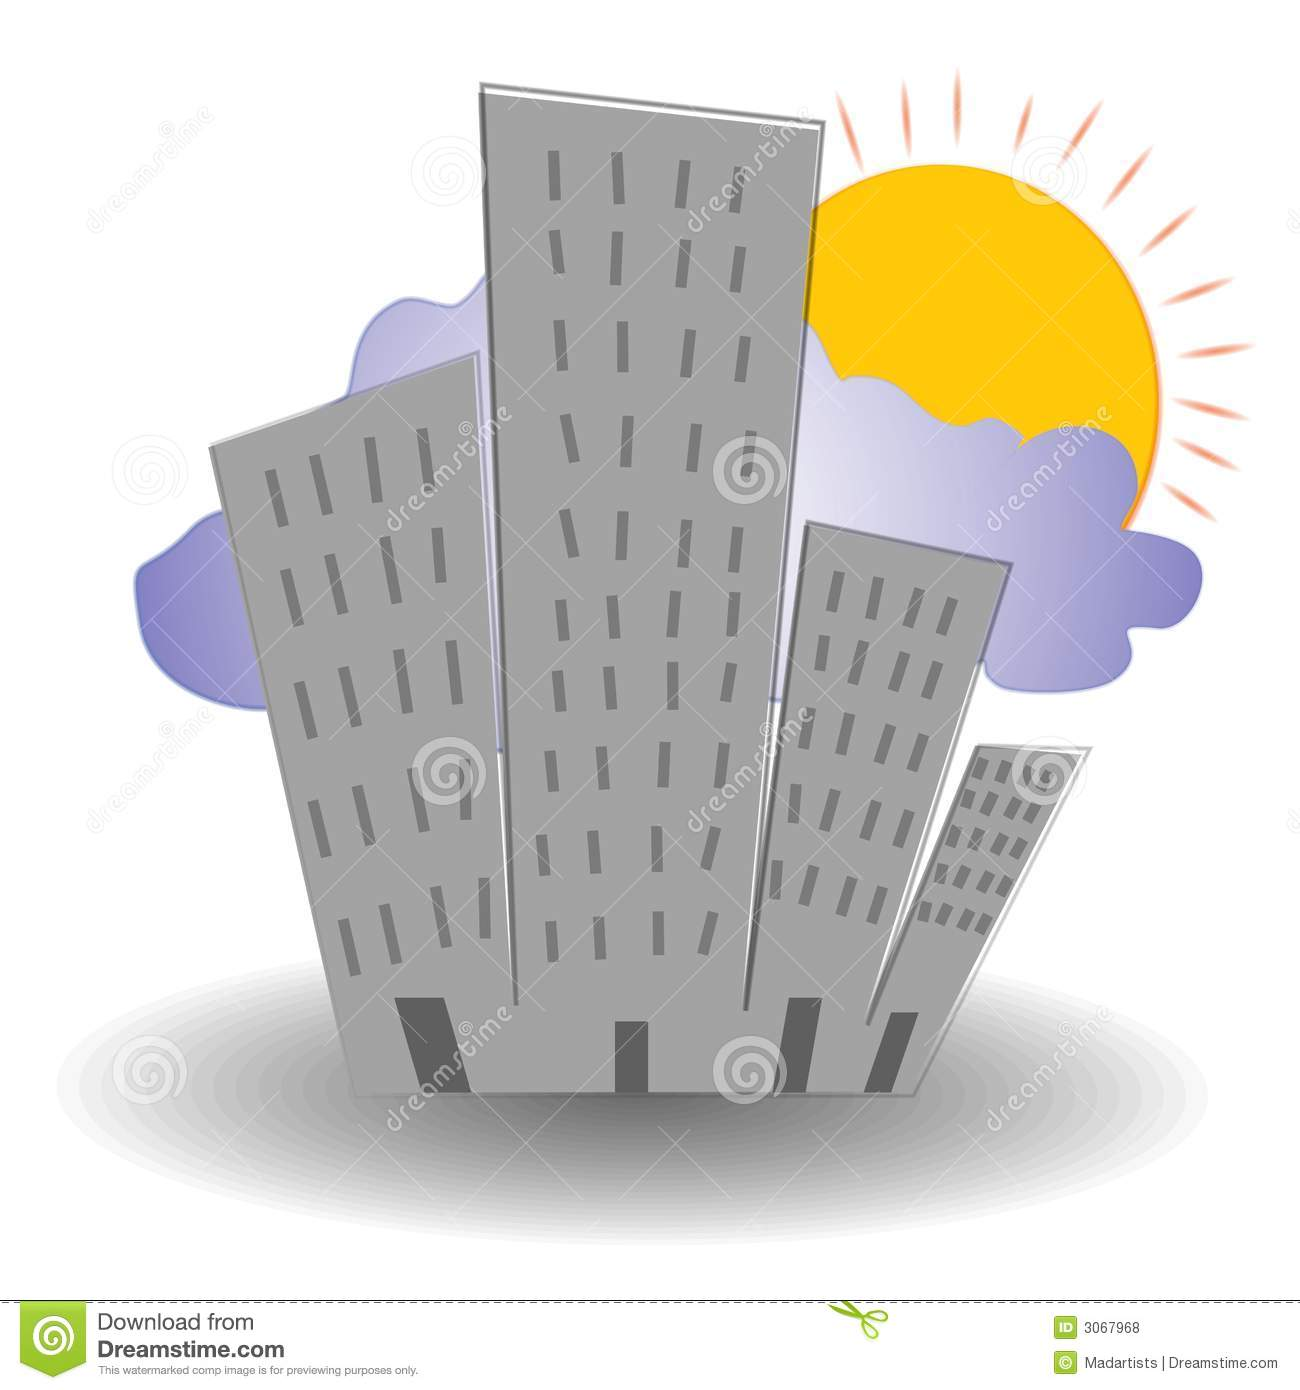 city buildings clipart - photo #18